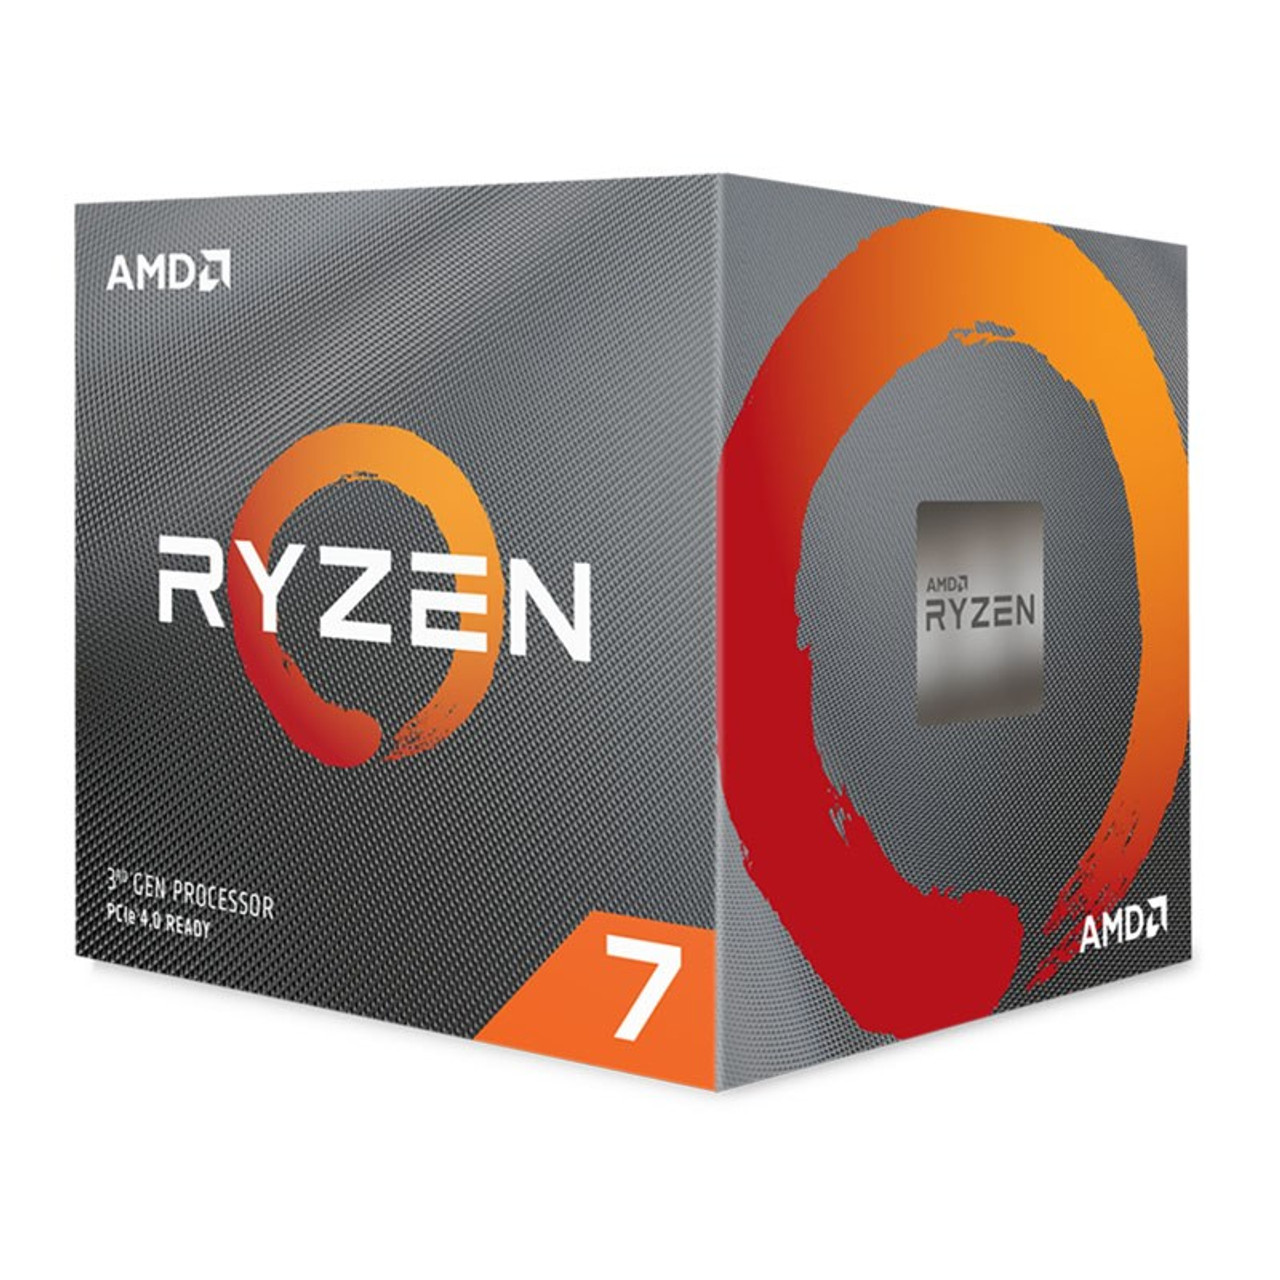 Product image for AMD Ryzen 7 3700X with Wraith Prism | CX Computer Superstore